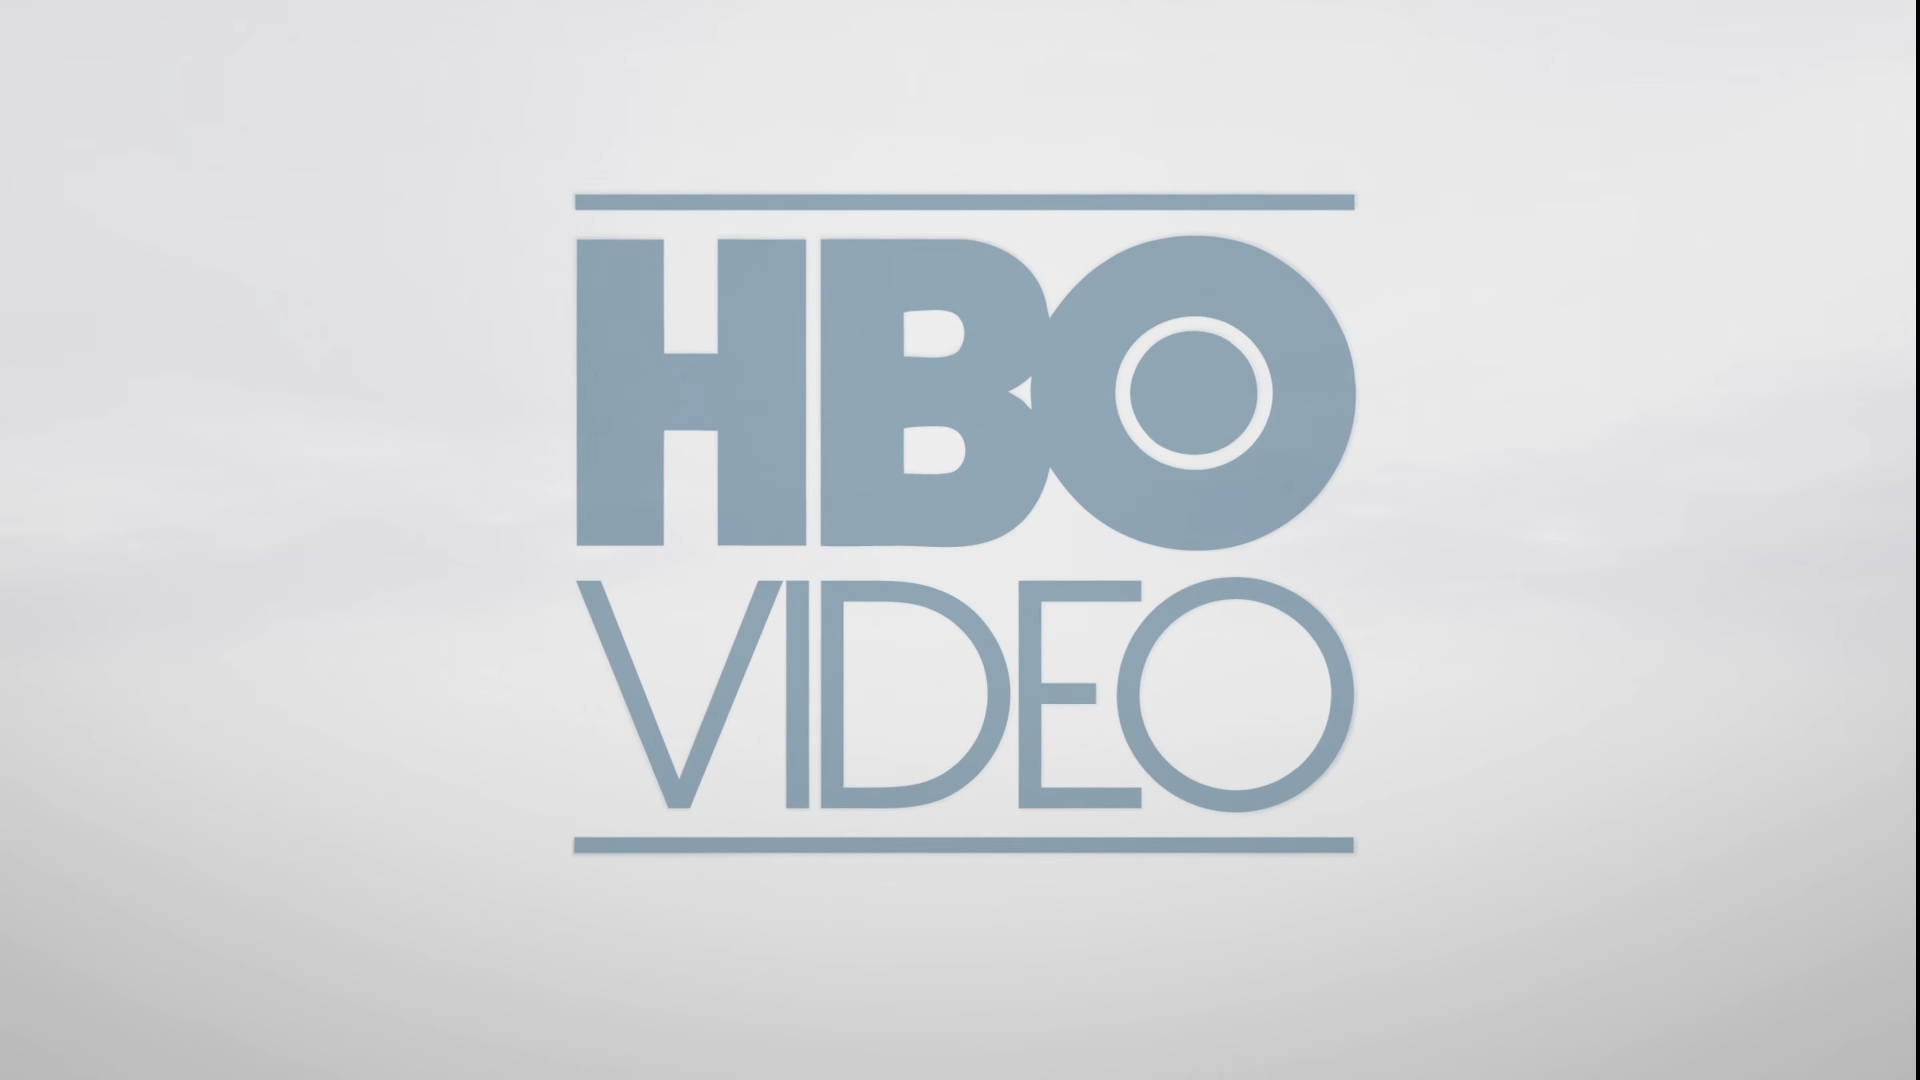 HBO Home Entertainment - Logopedia, the logo and branding site